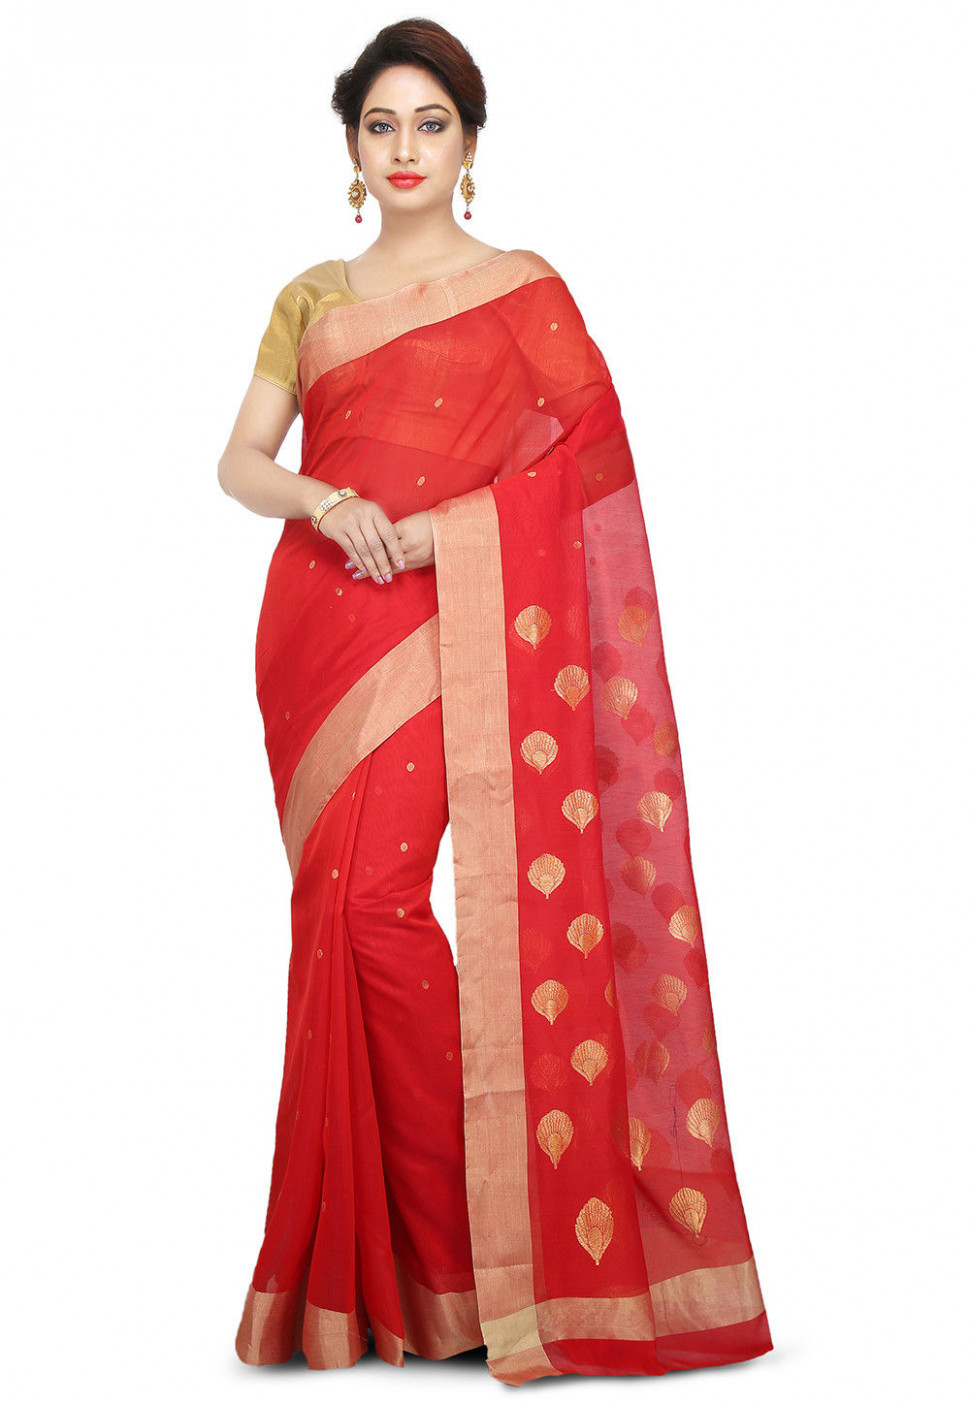 Handloom Chanderi Silk Saree in Red : SKBA170